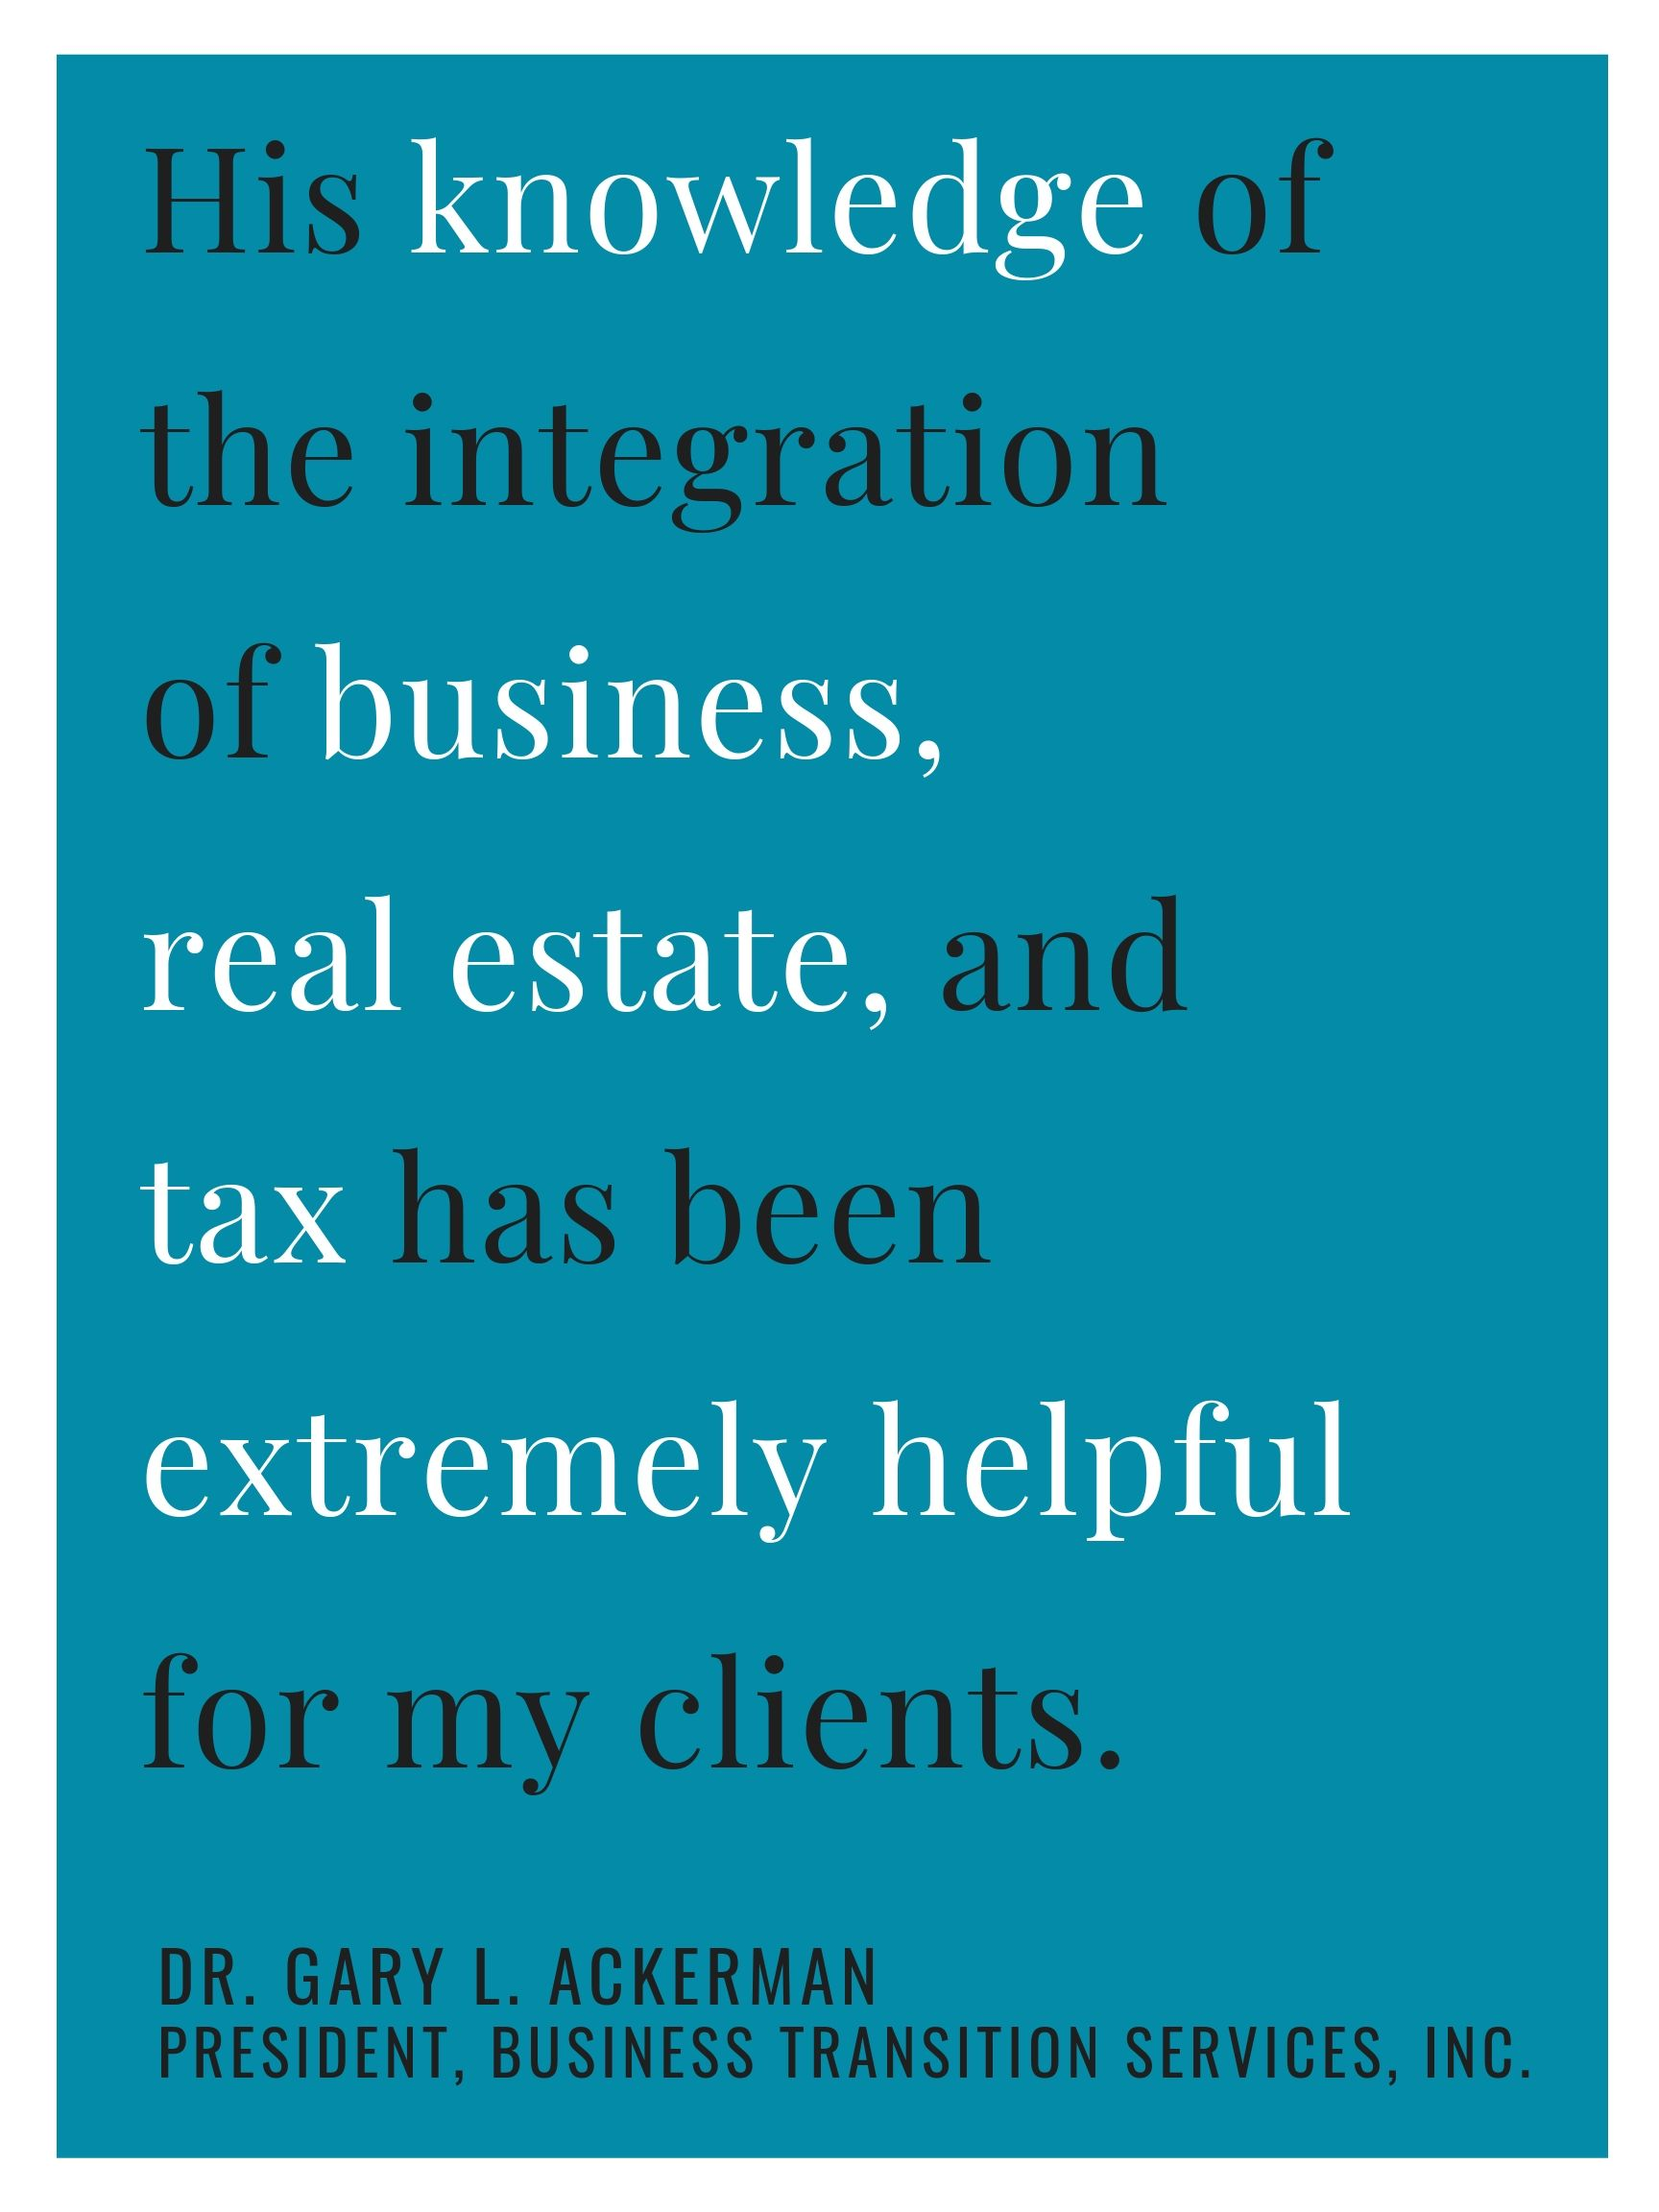 """""""Rick has been extremely helpful and resourceful in navigating my clients through the legal and tax quagmire. We work primarily on real estate and business transitions (many on the same transaction), and his knowledge of both has been invaluable. I have turned many client projects over to him for fulfillment and can trust that it will get done correctly without oversight. In particular, his knowledge of the integration of business, real estate and tax has been extremely helpful for my clients.""""  -Dr. Gary L. Ackerman, President at Business Transitions"""